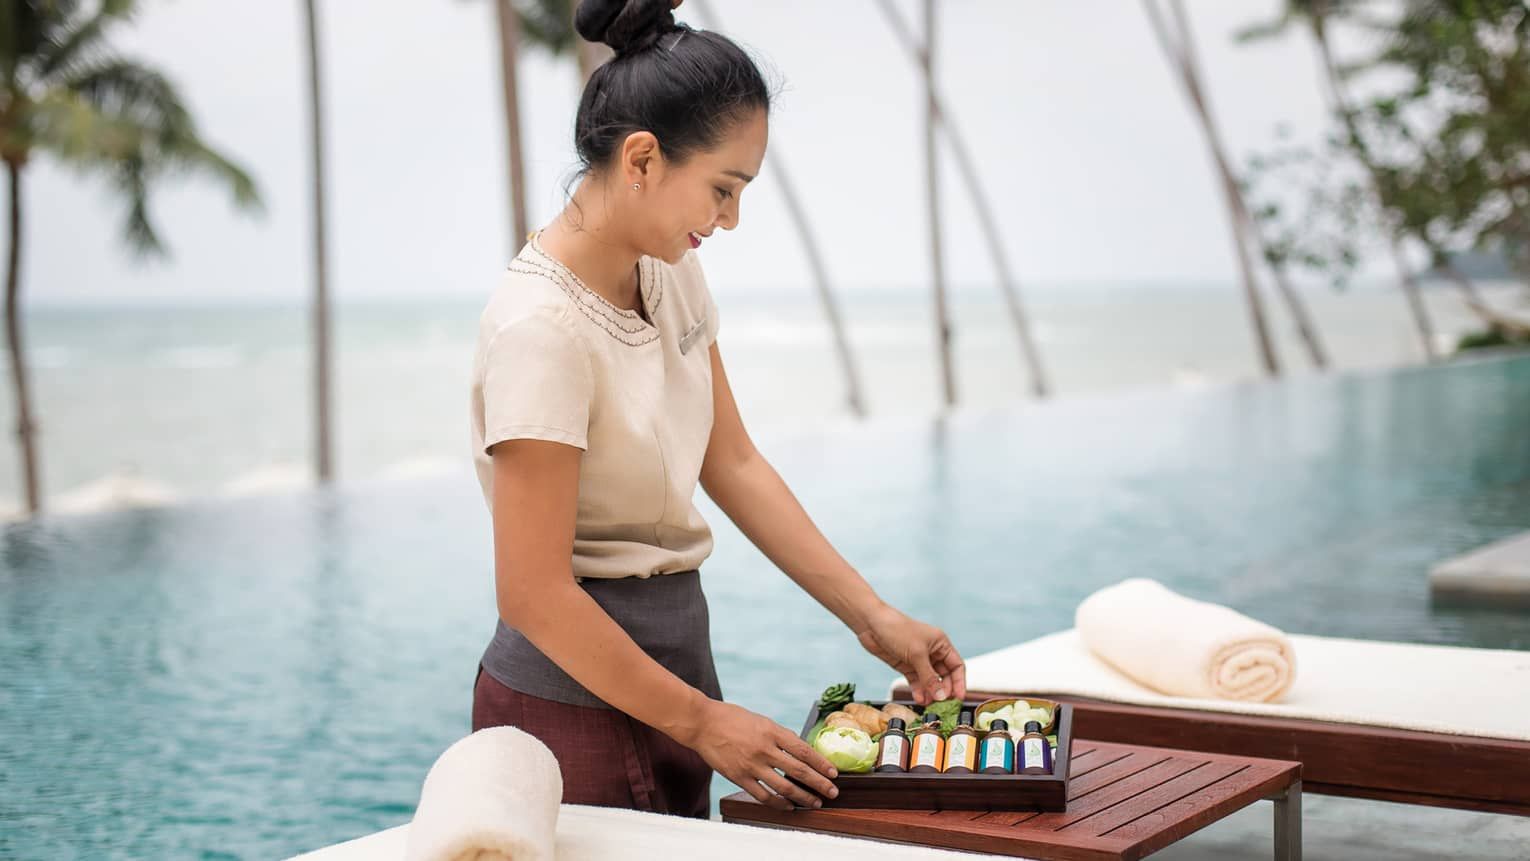 Spa attendant stands in front of swimming pool, holds wood box with bottles, soaps